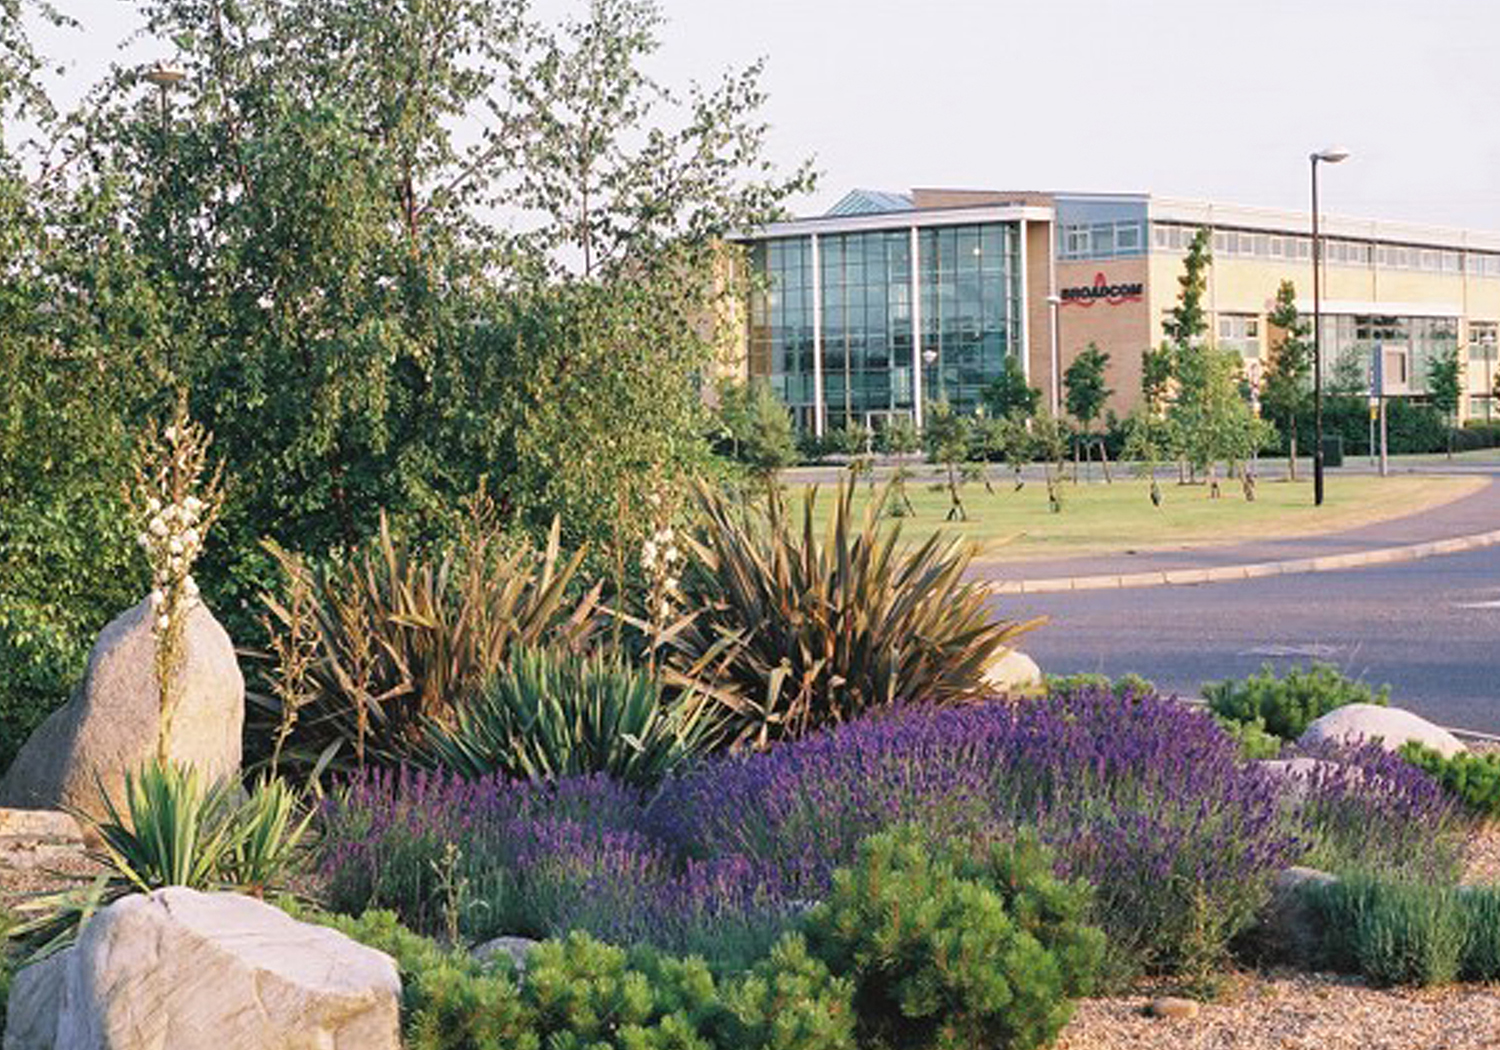 Projects-CommInd-CambsSciencePark-Planting-1500x1050